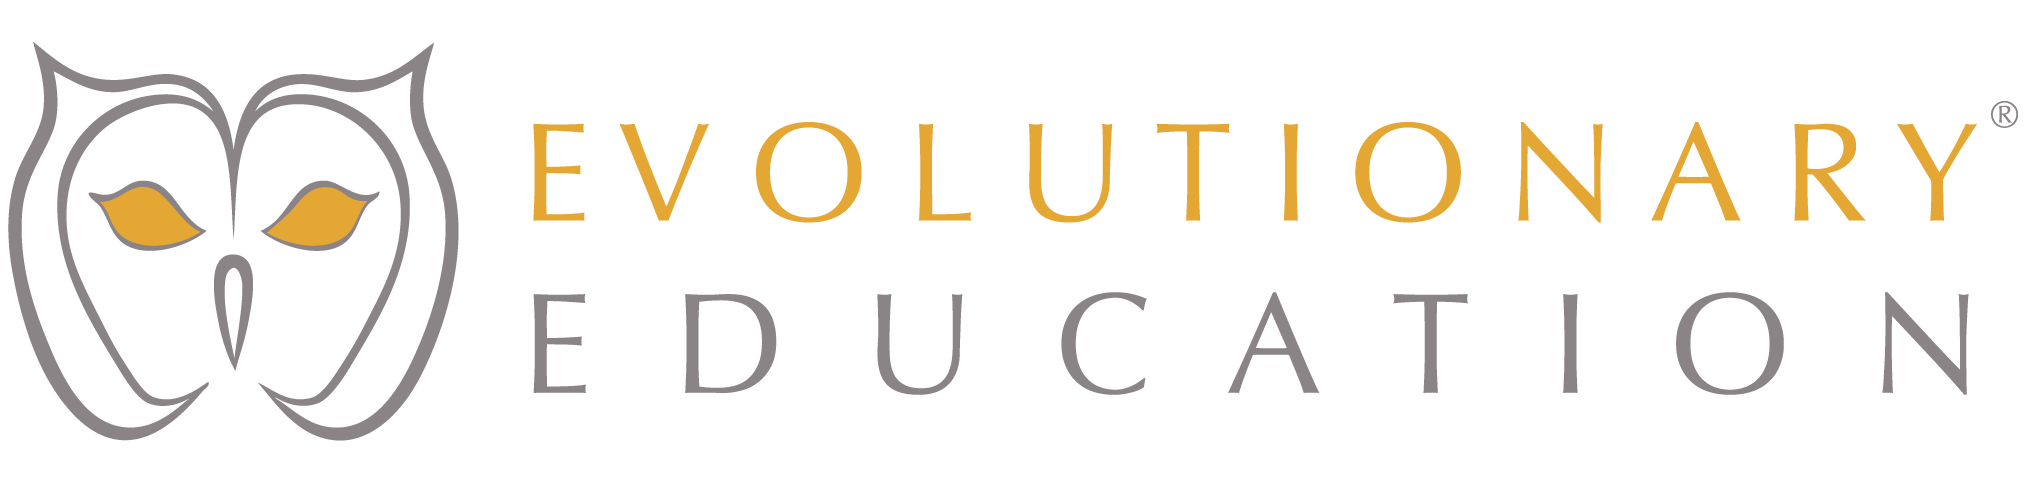 Evolutionary Education Online